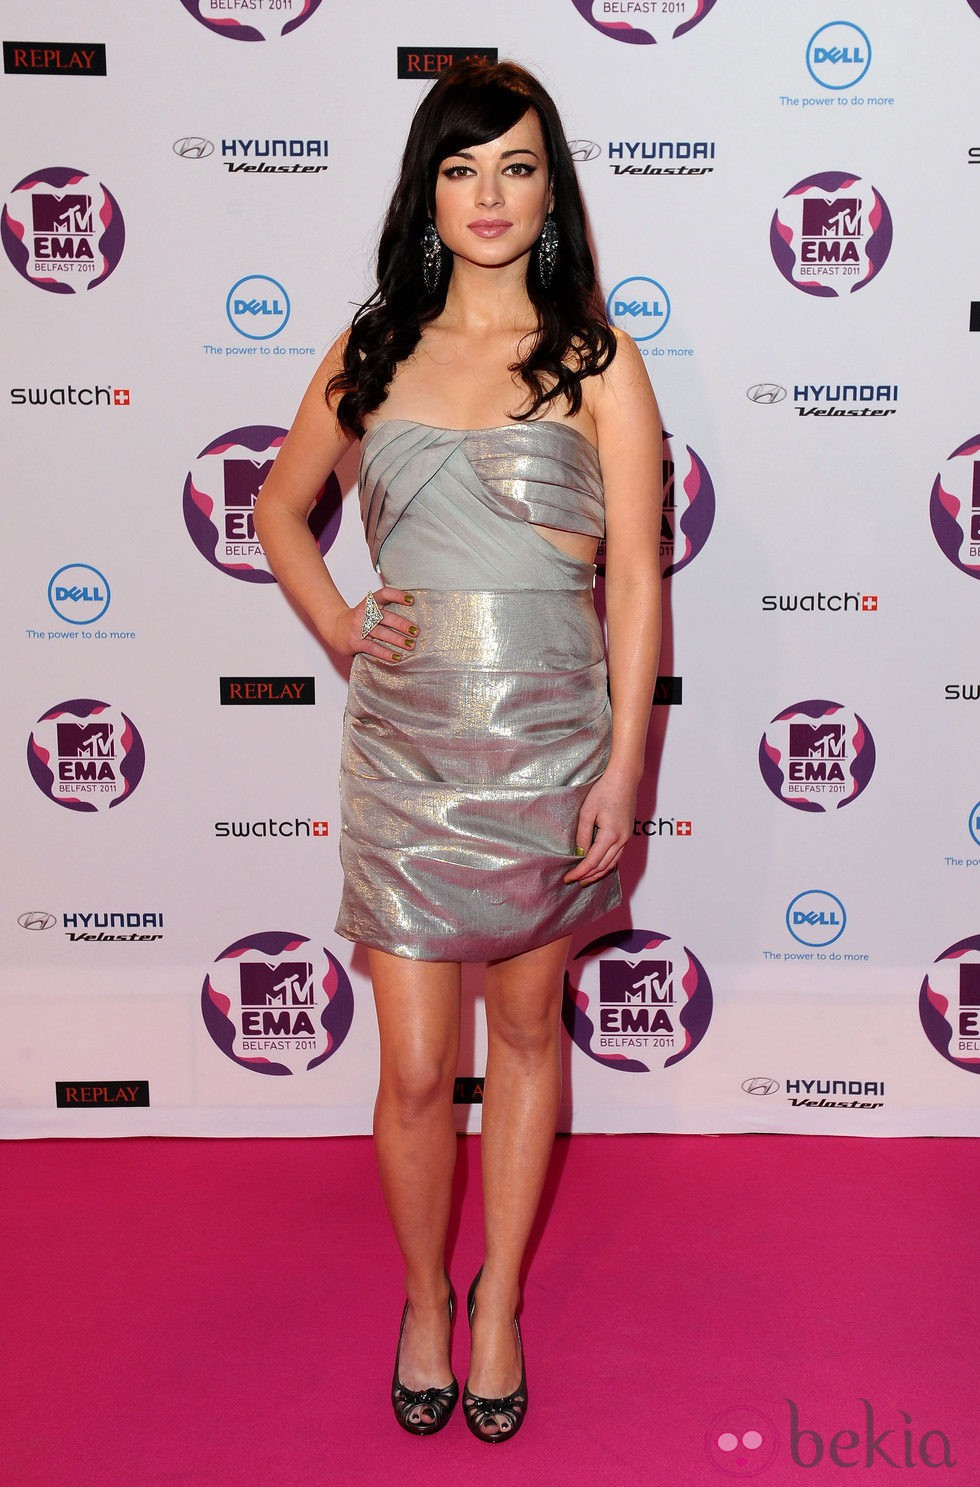 Ashley Rickards en los MTV Europe Music Awards 2011 con melena ondulada y flequillo lateral